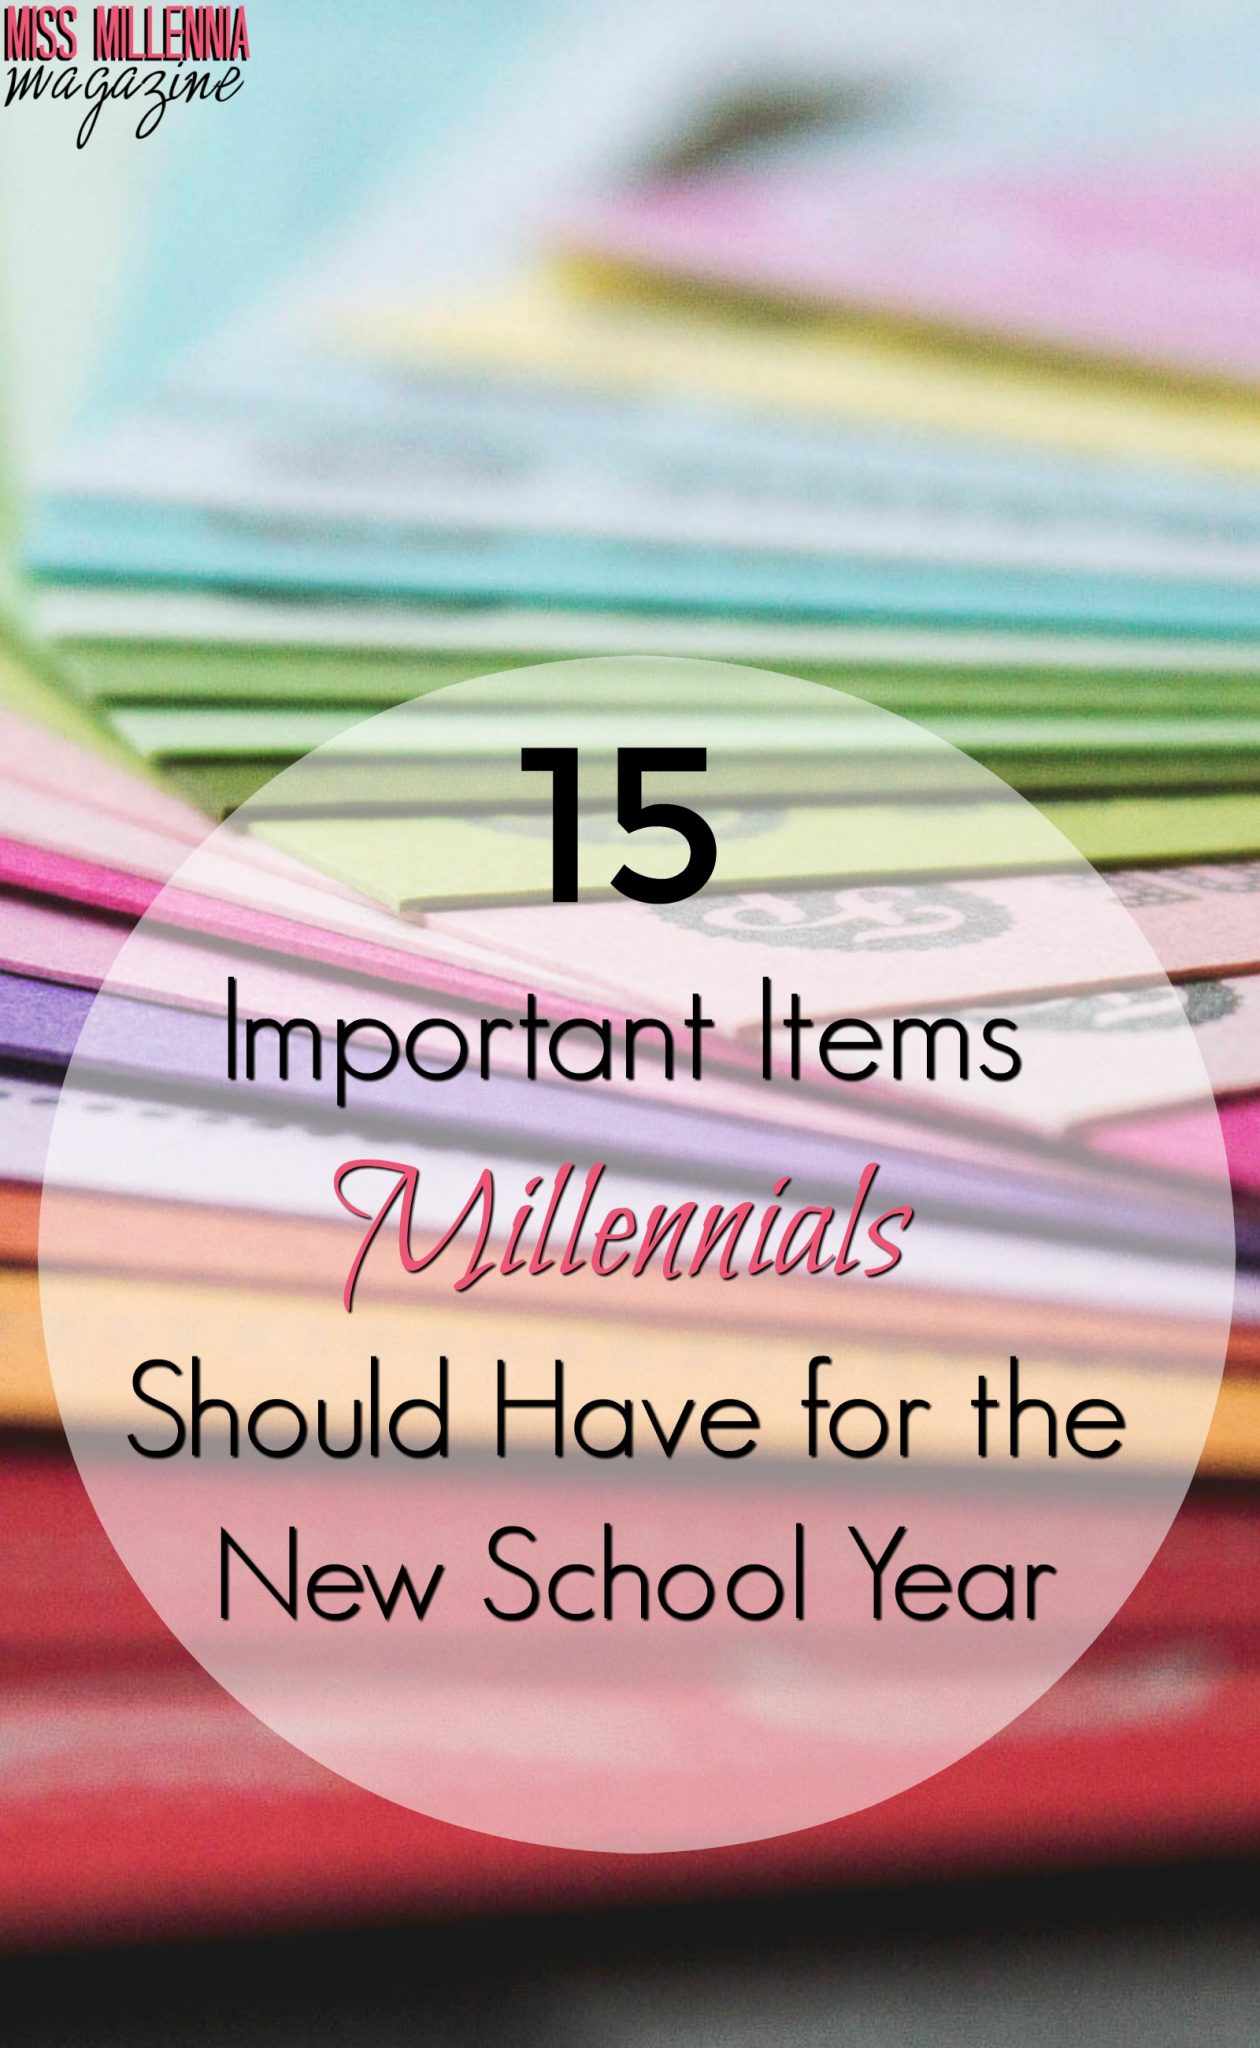 15 Important Items Millennials Should Have for the New School Year